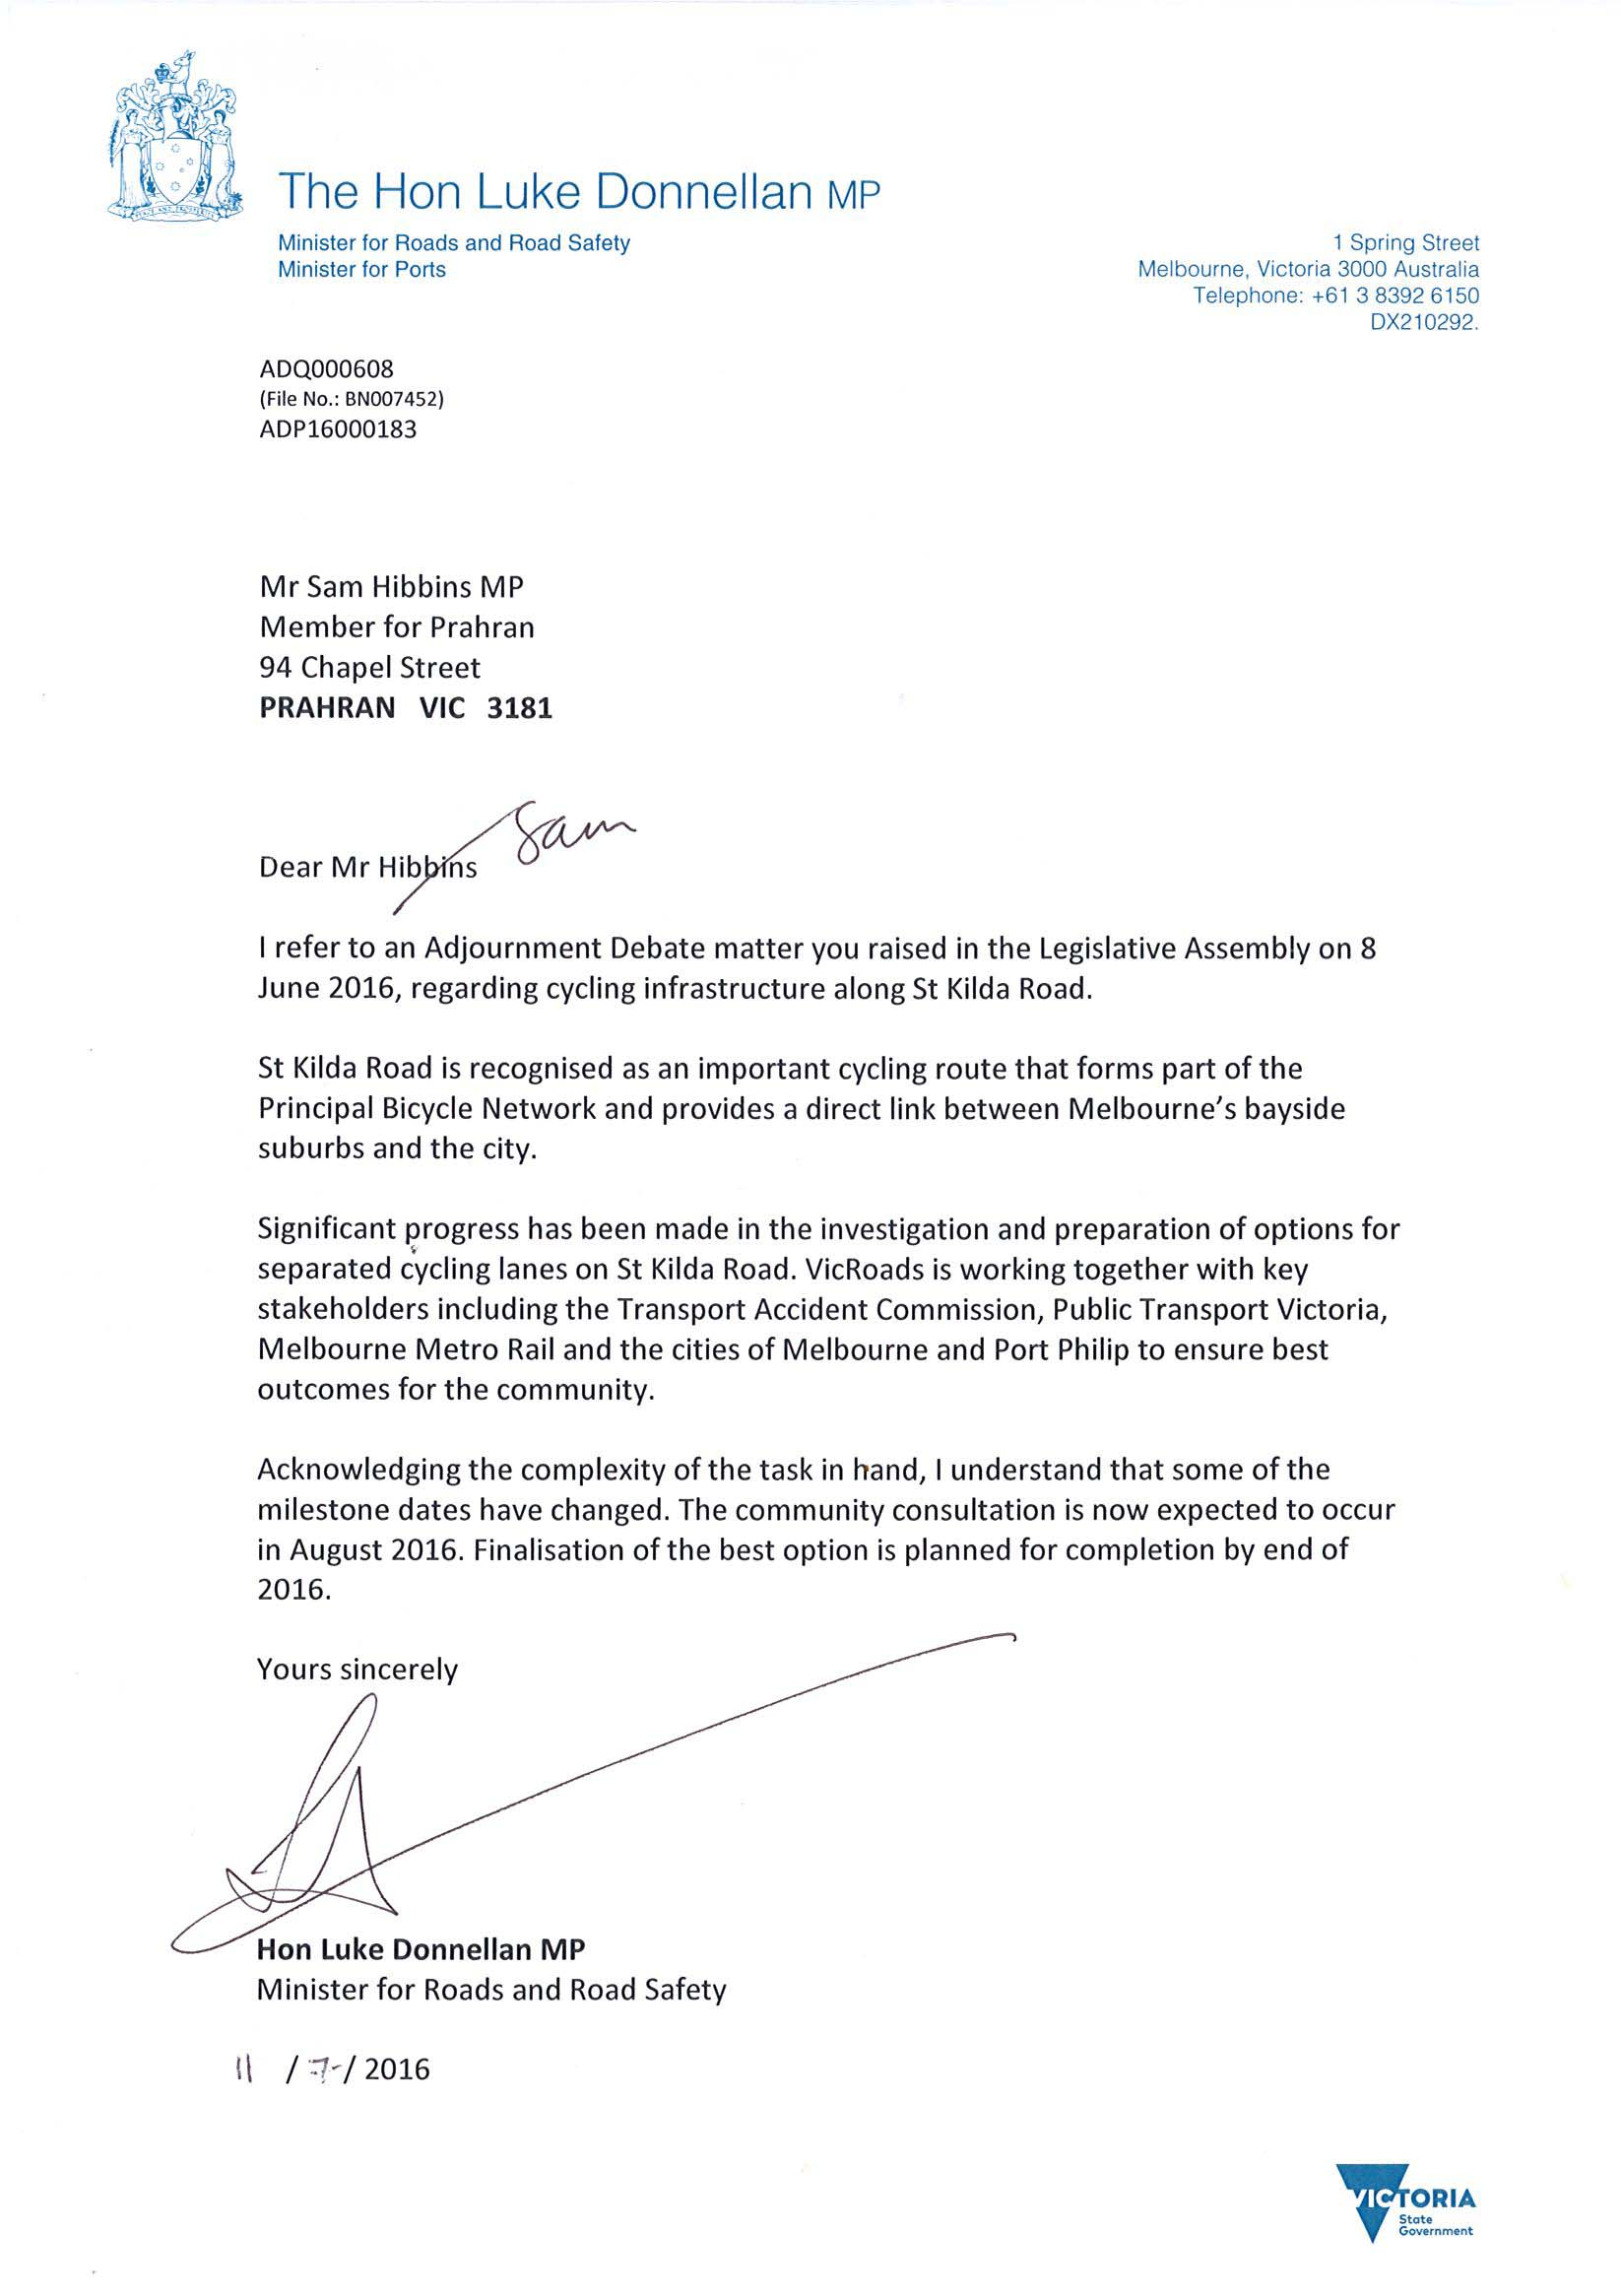 Letter_from_Luke_Donnellan__Minister_for_Roads_re_St_Kilda_Bike_Lanes.jpg